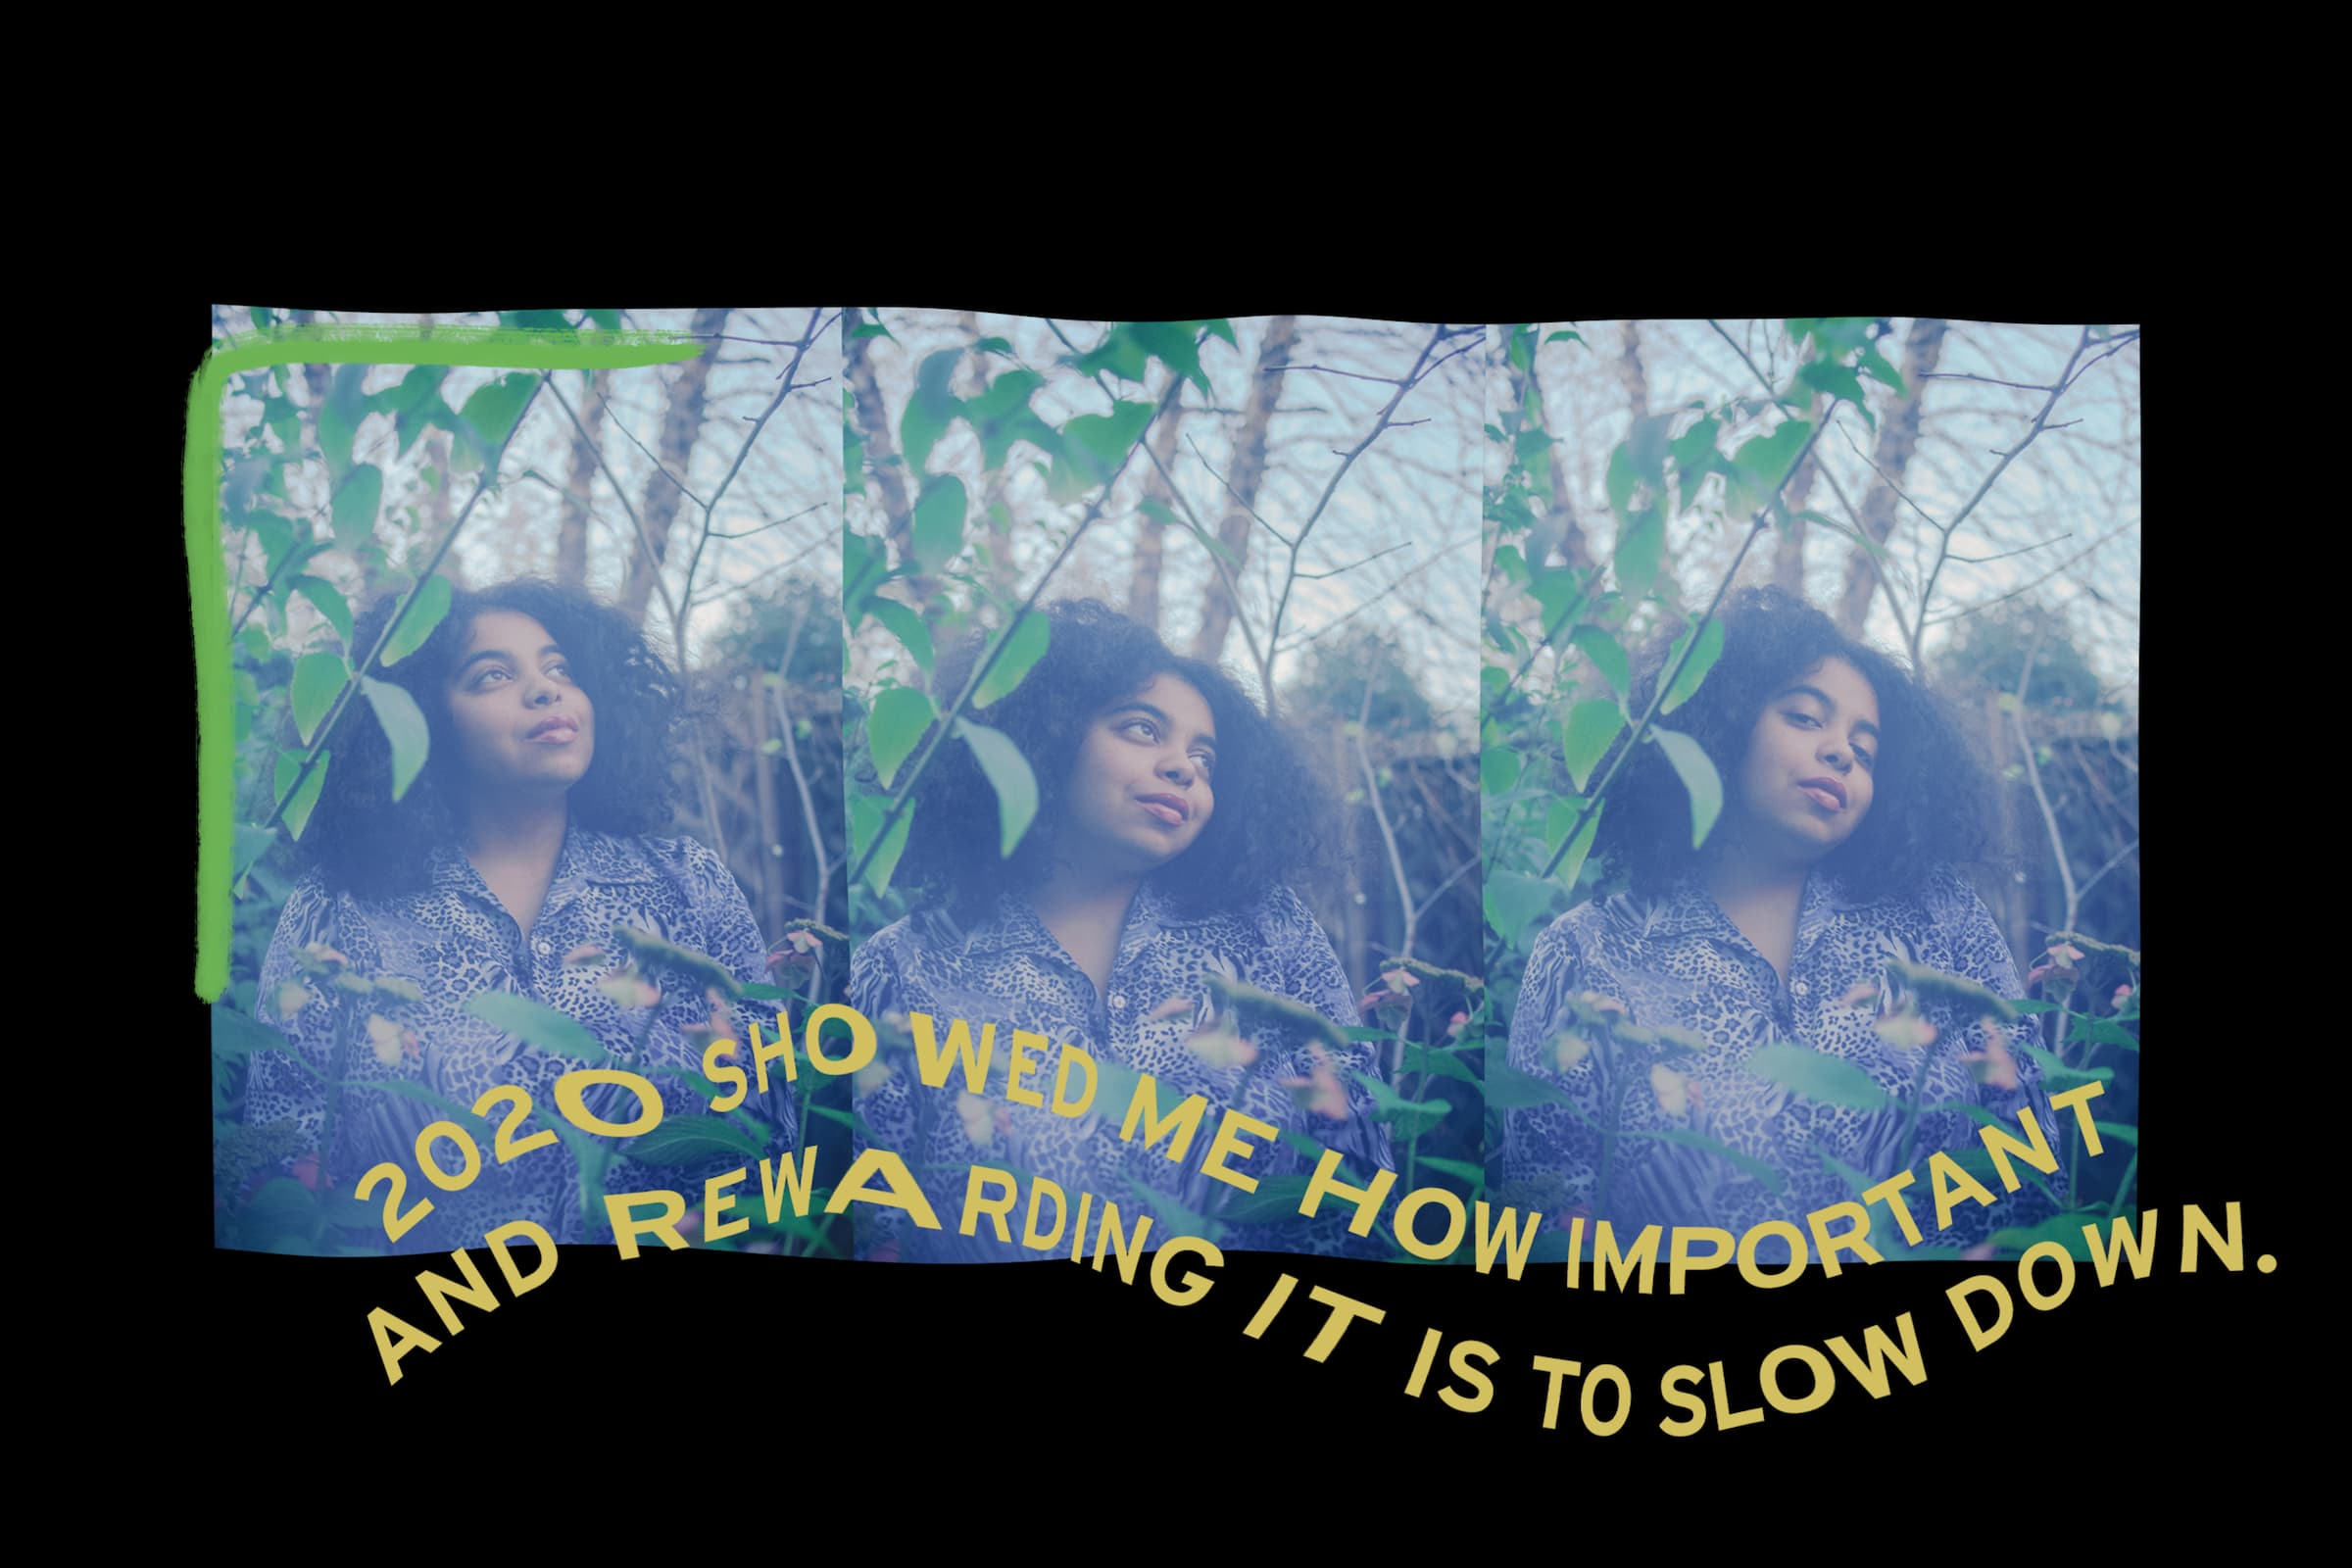 """A collage of photos showing duendita in a garden with the text """"2020 showed me how important and rewarding it is to slow down"""""""